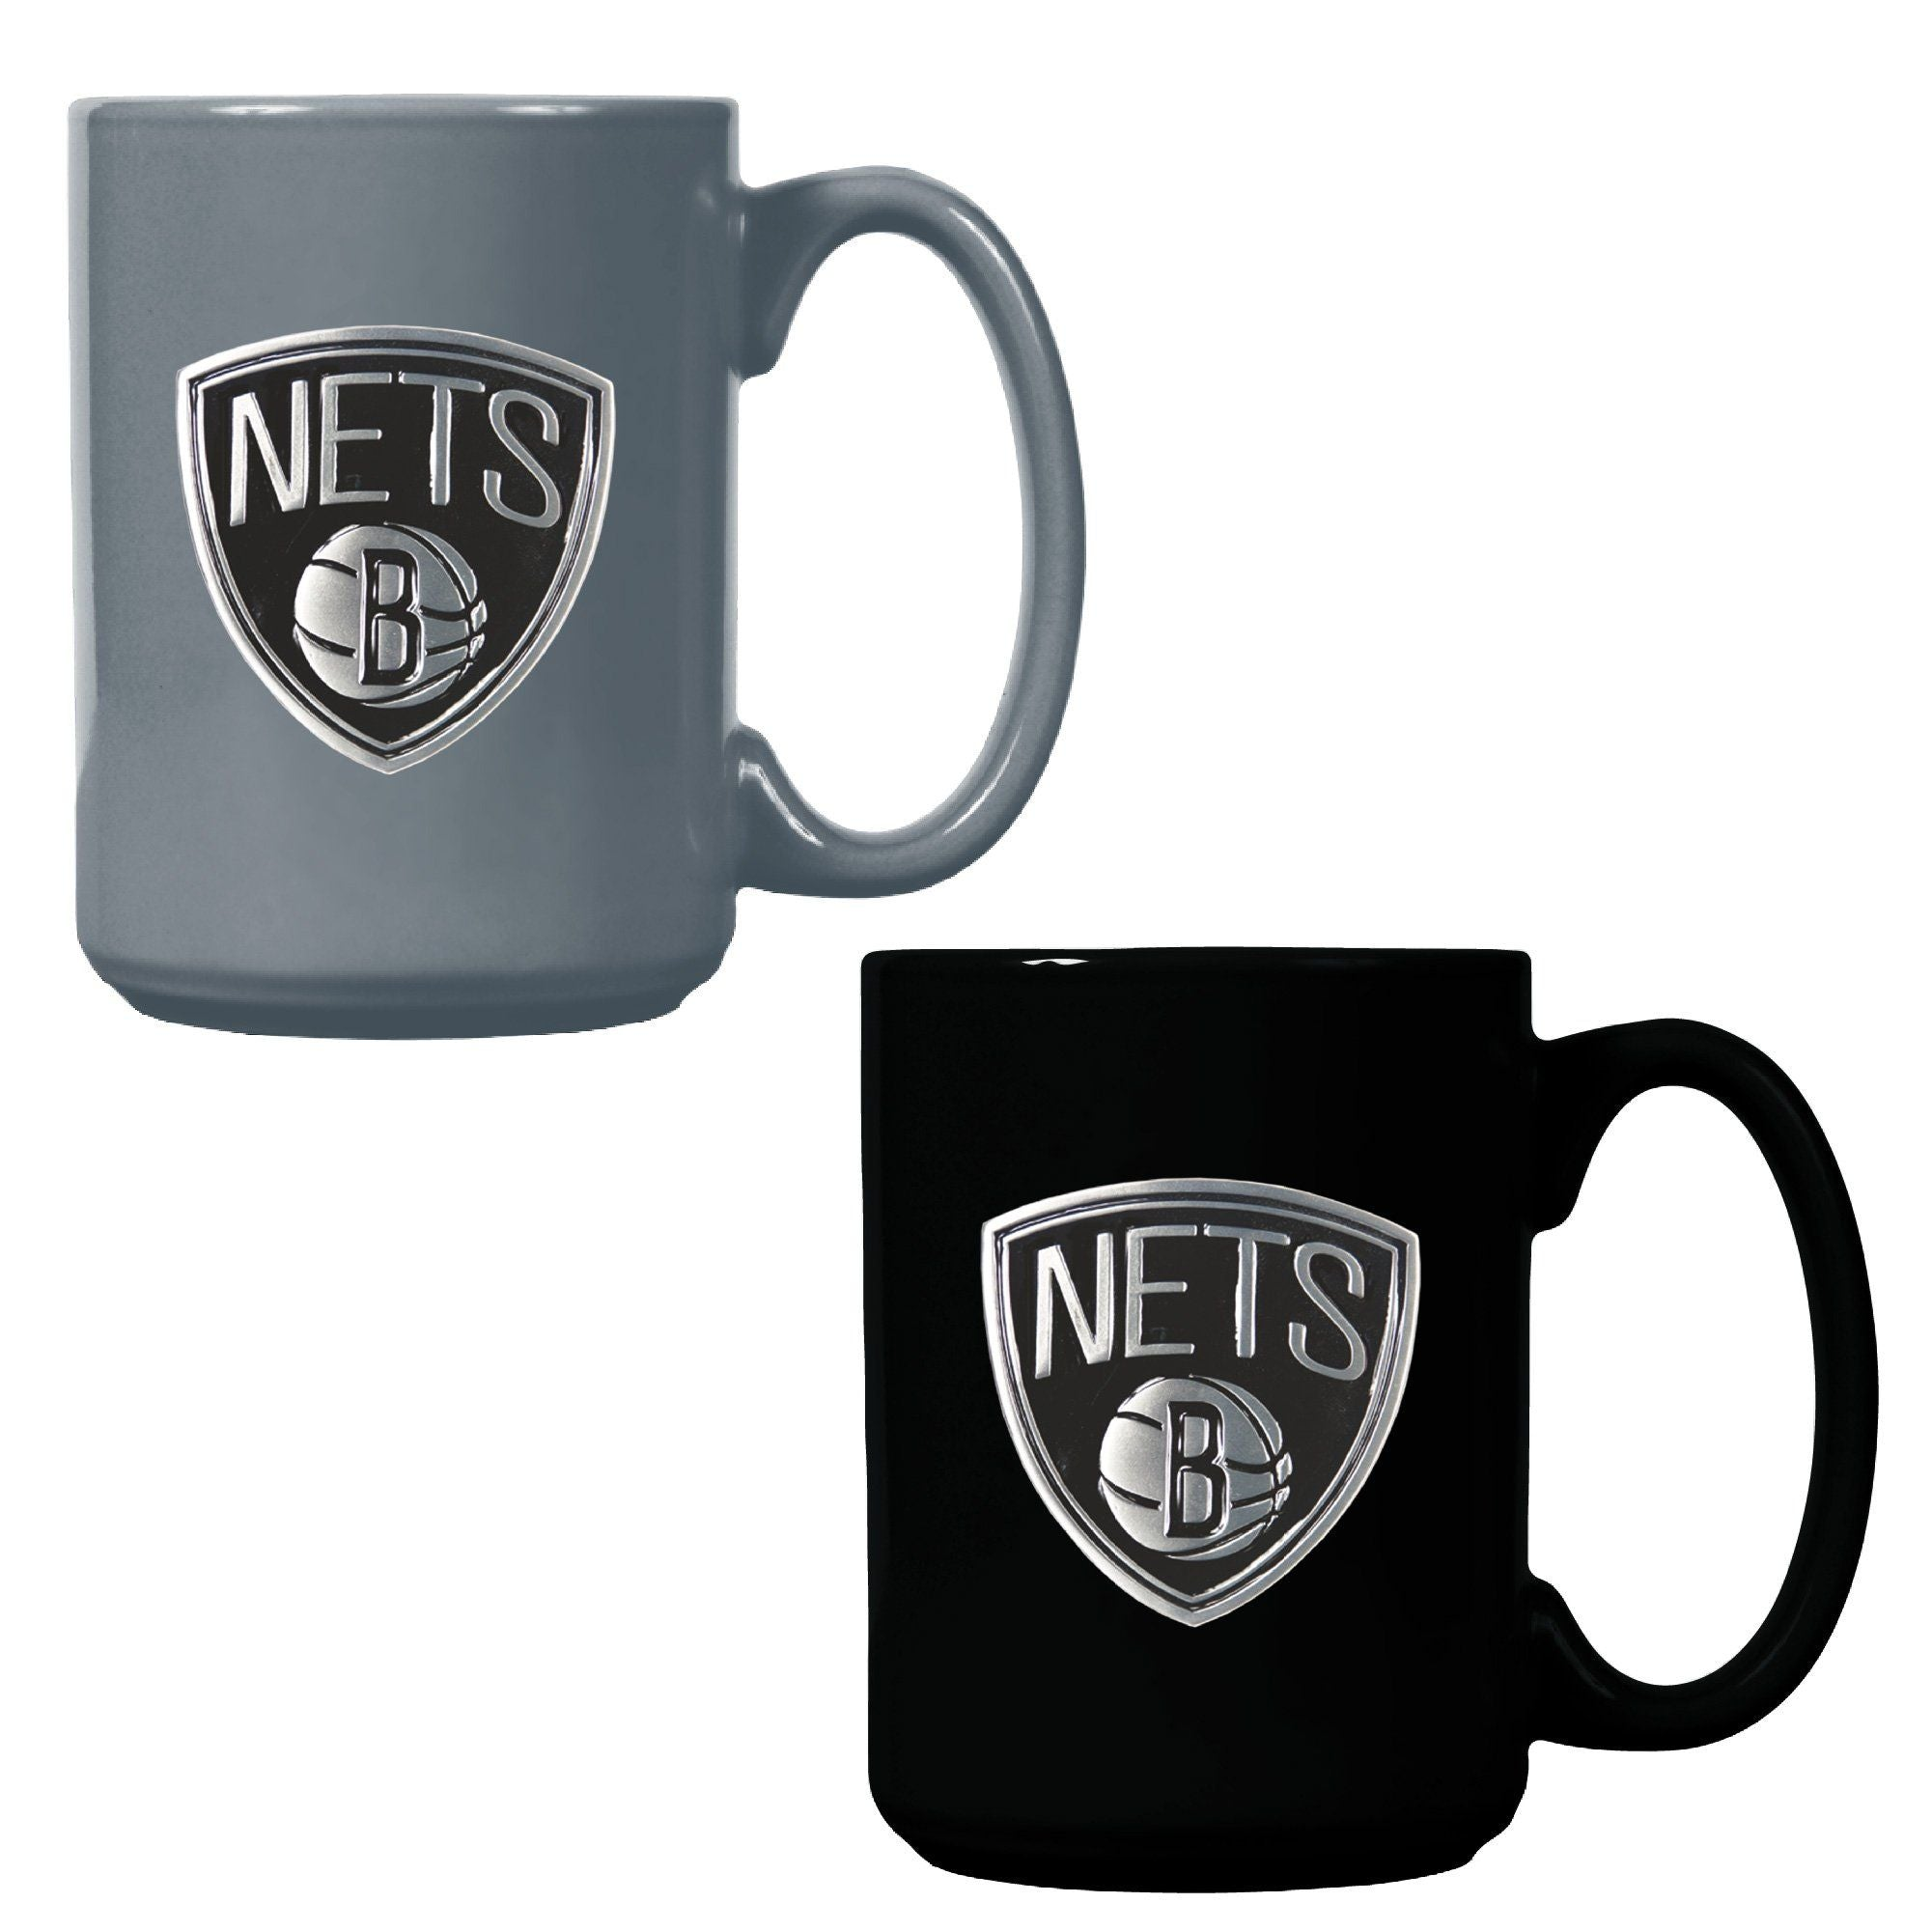 THE COFFEE MUG SET- 2pc Ceramic Coffee Mug Set